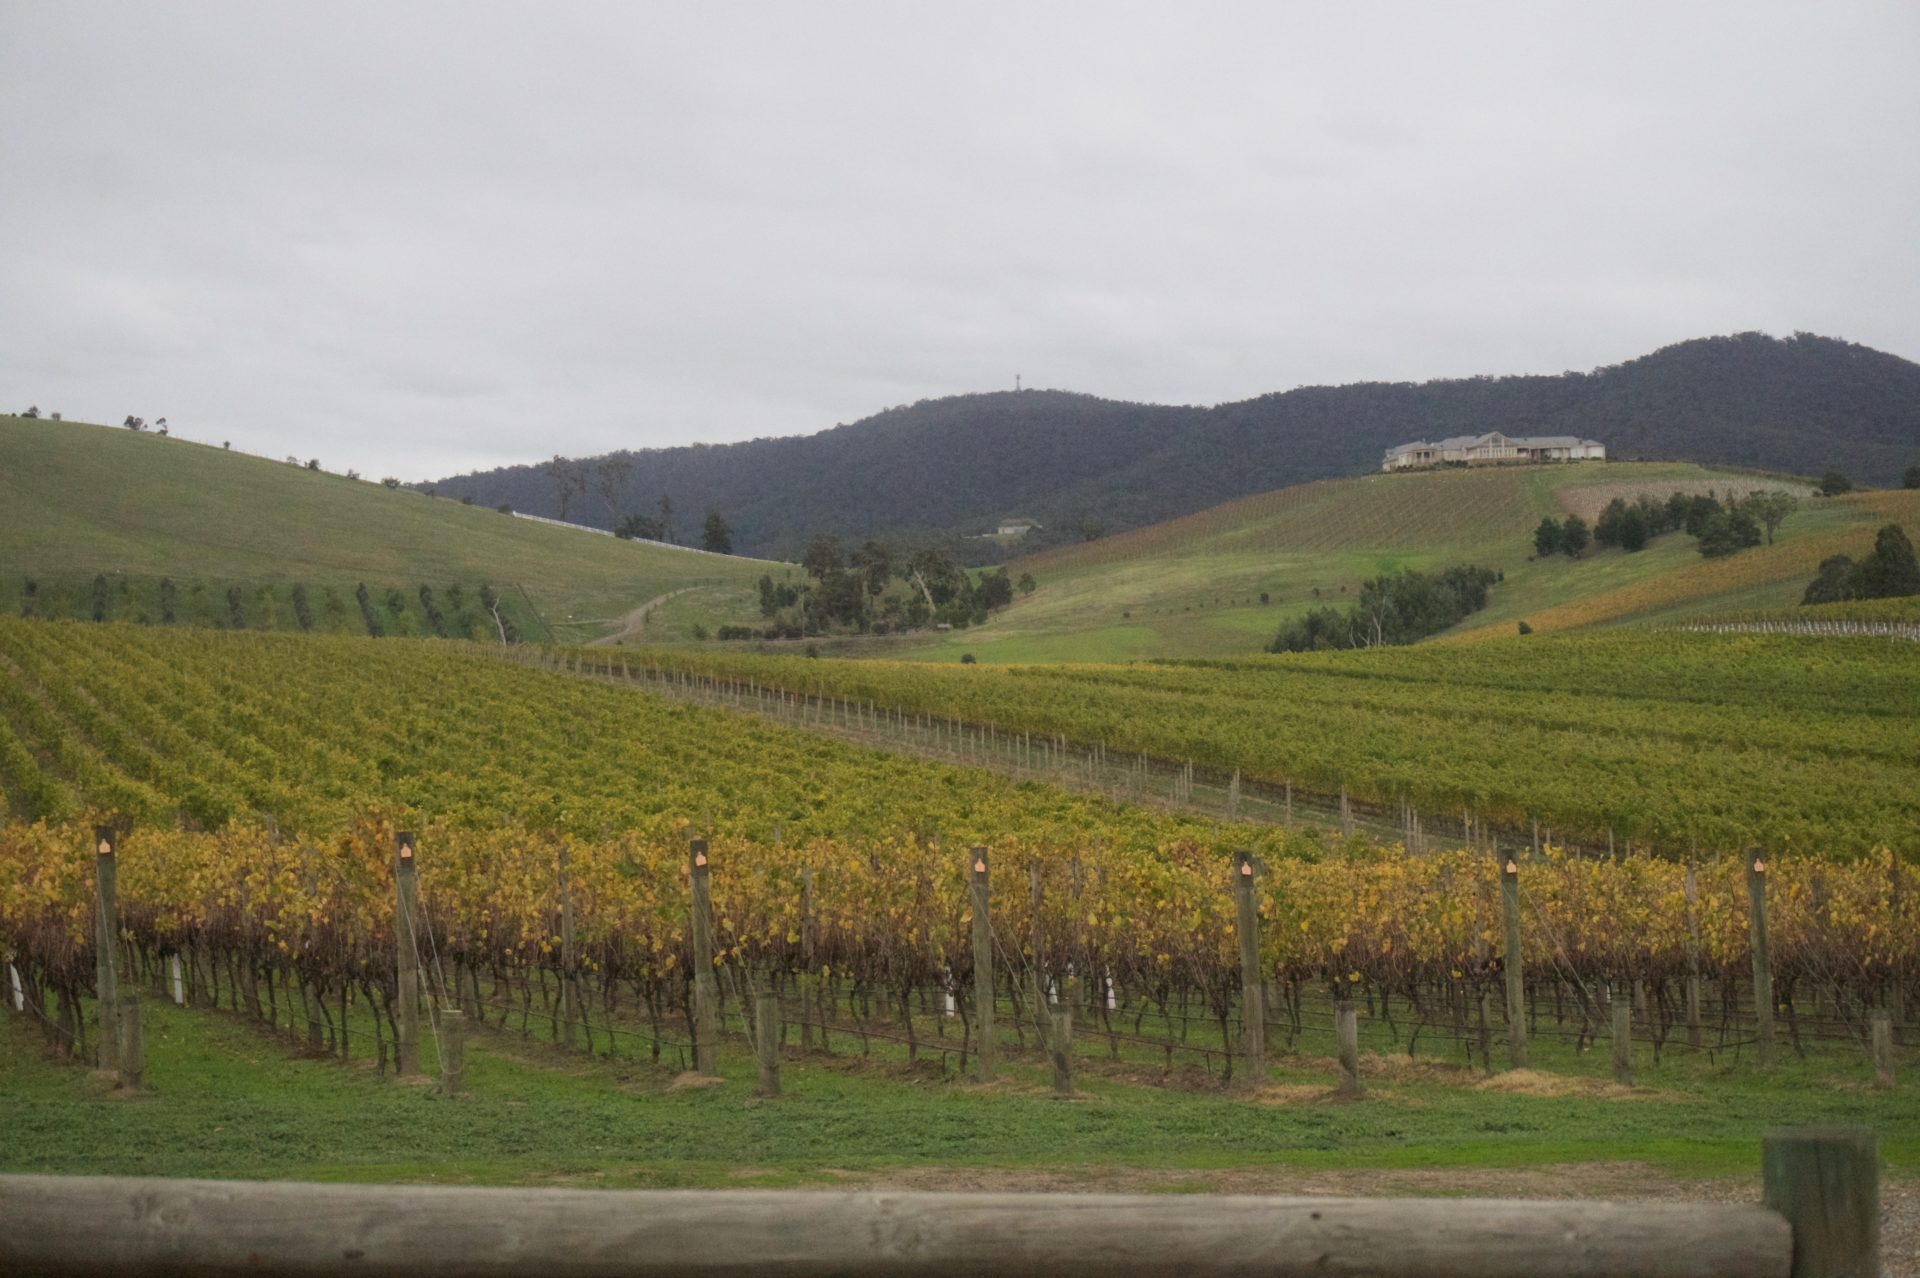 The view over the Trattoria d'Soumah Winery in the Yarra Valley, seen from the italian resturant - a great place for lunch when visiting Yarra Valley Wineries